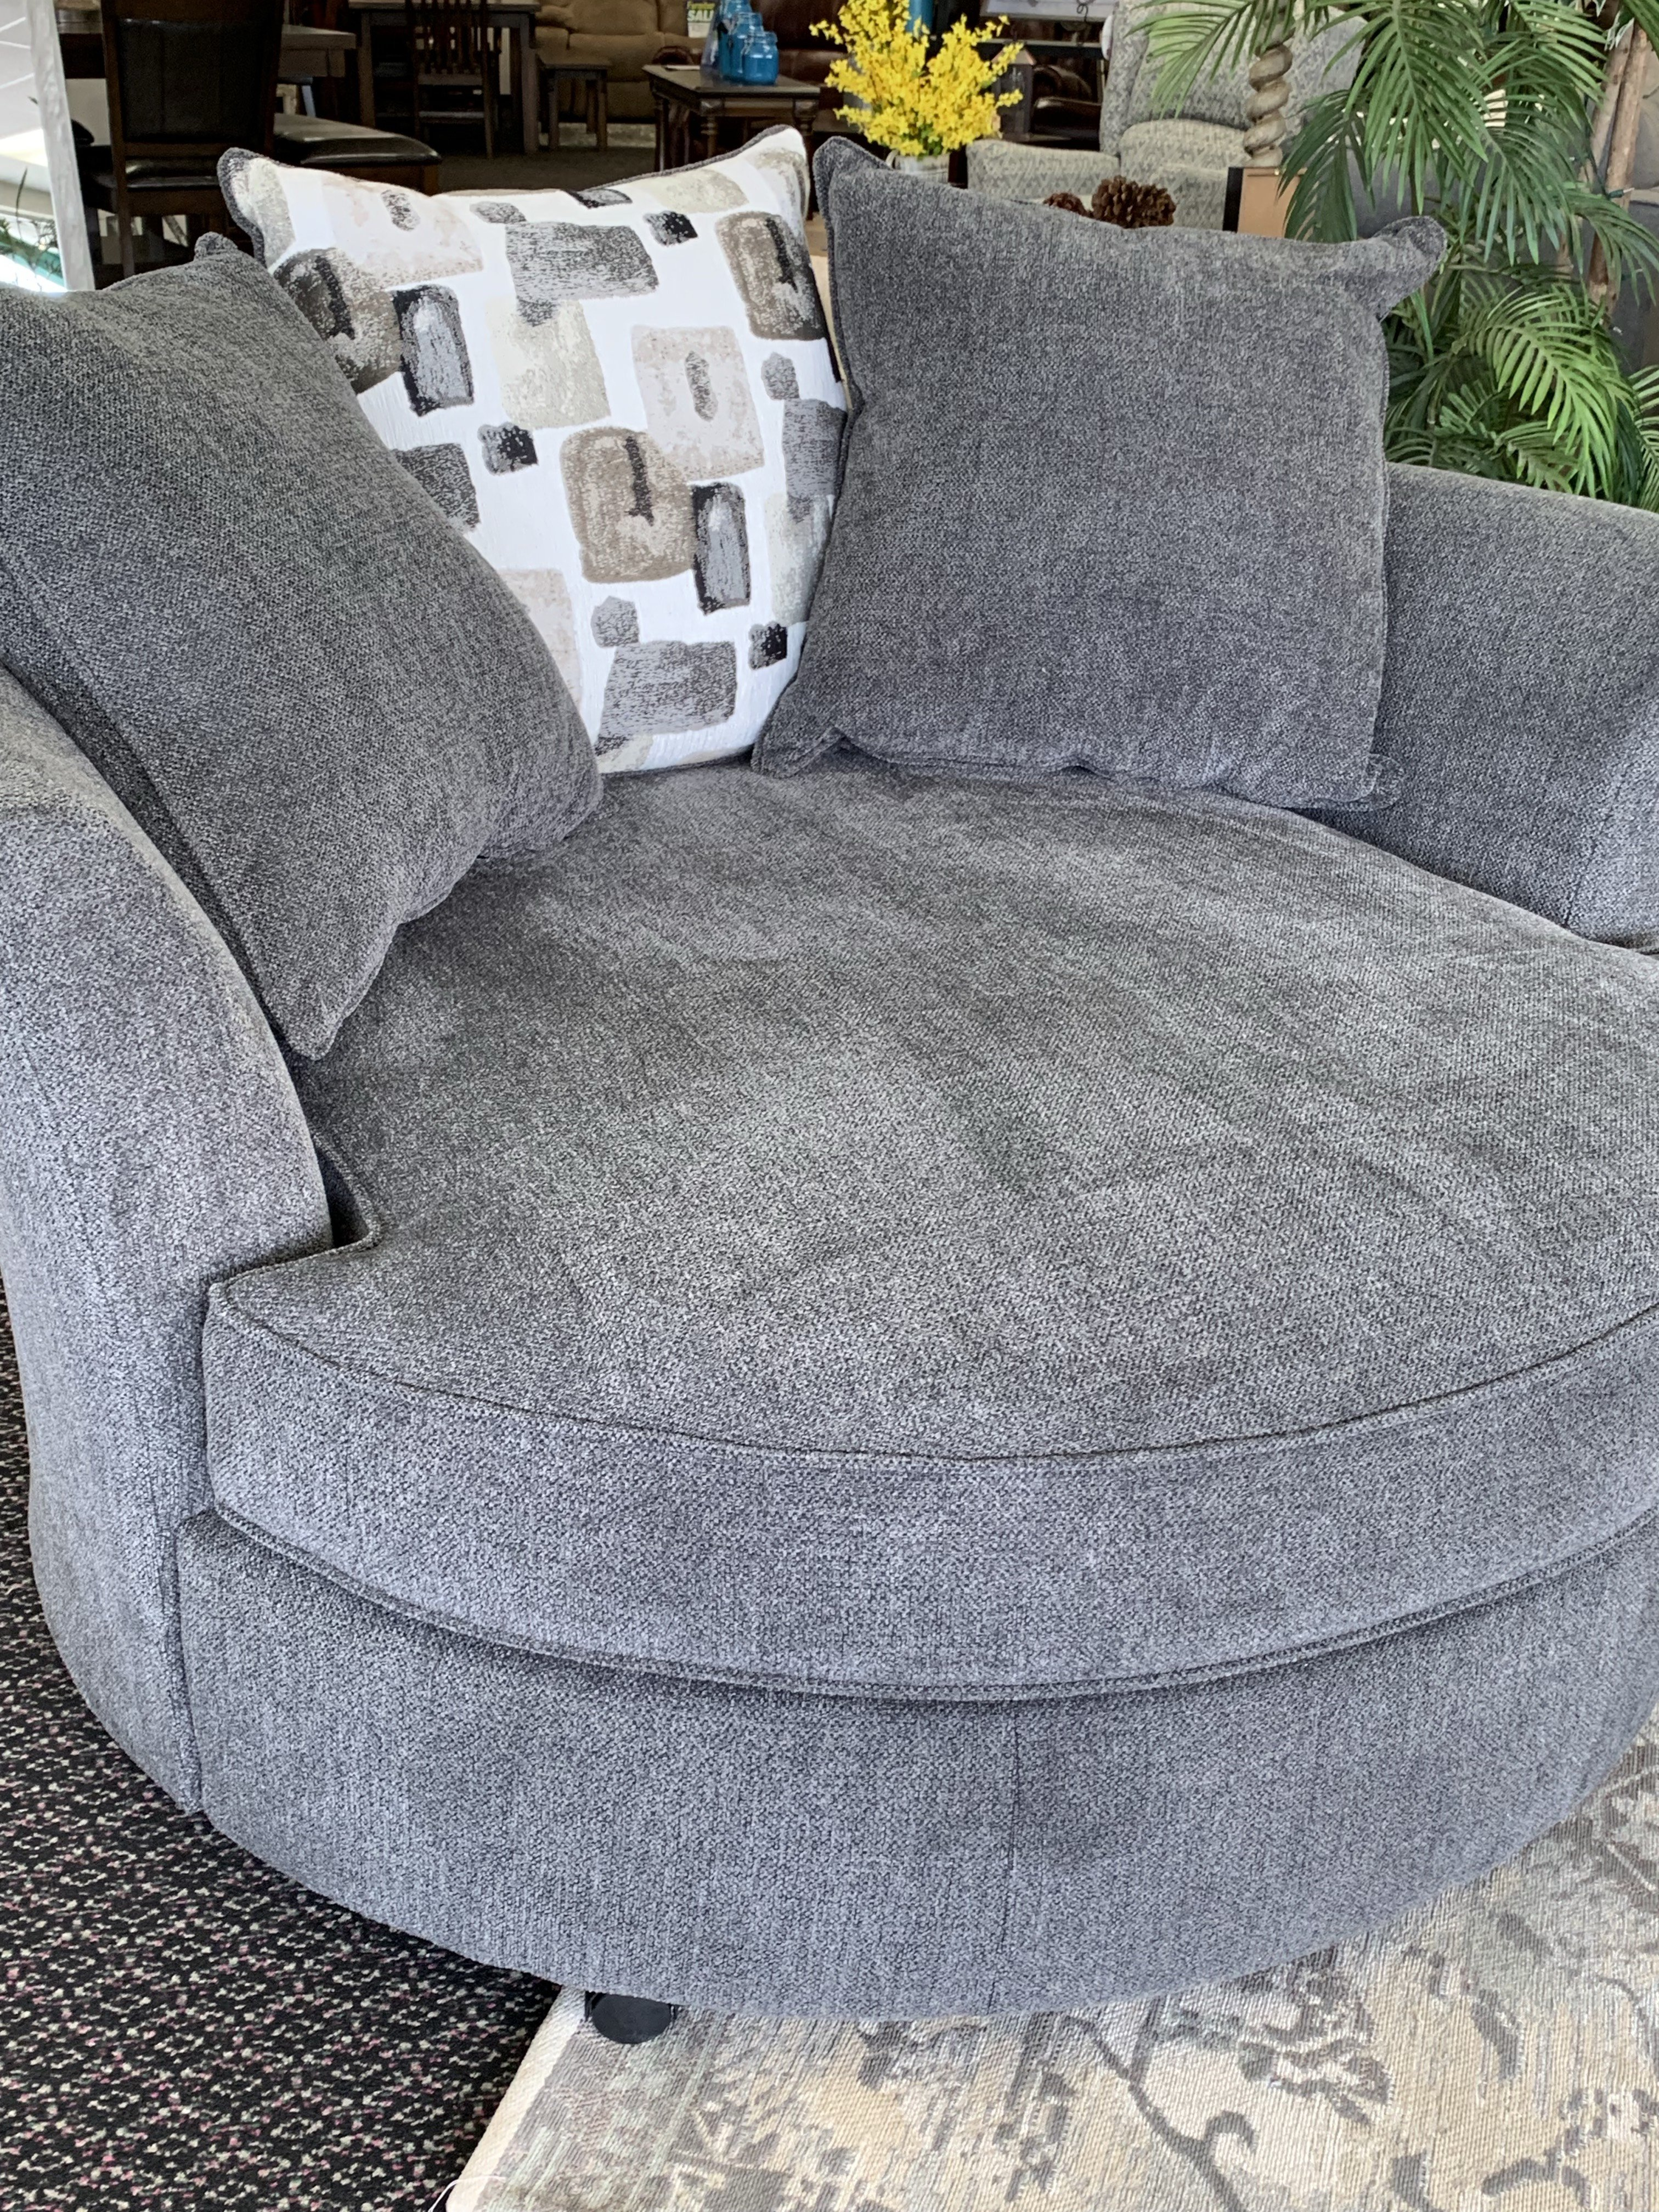 2240 Swivel Chair in Anchor Surge Huge Fabric $599